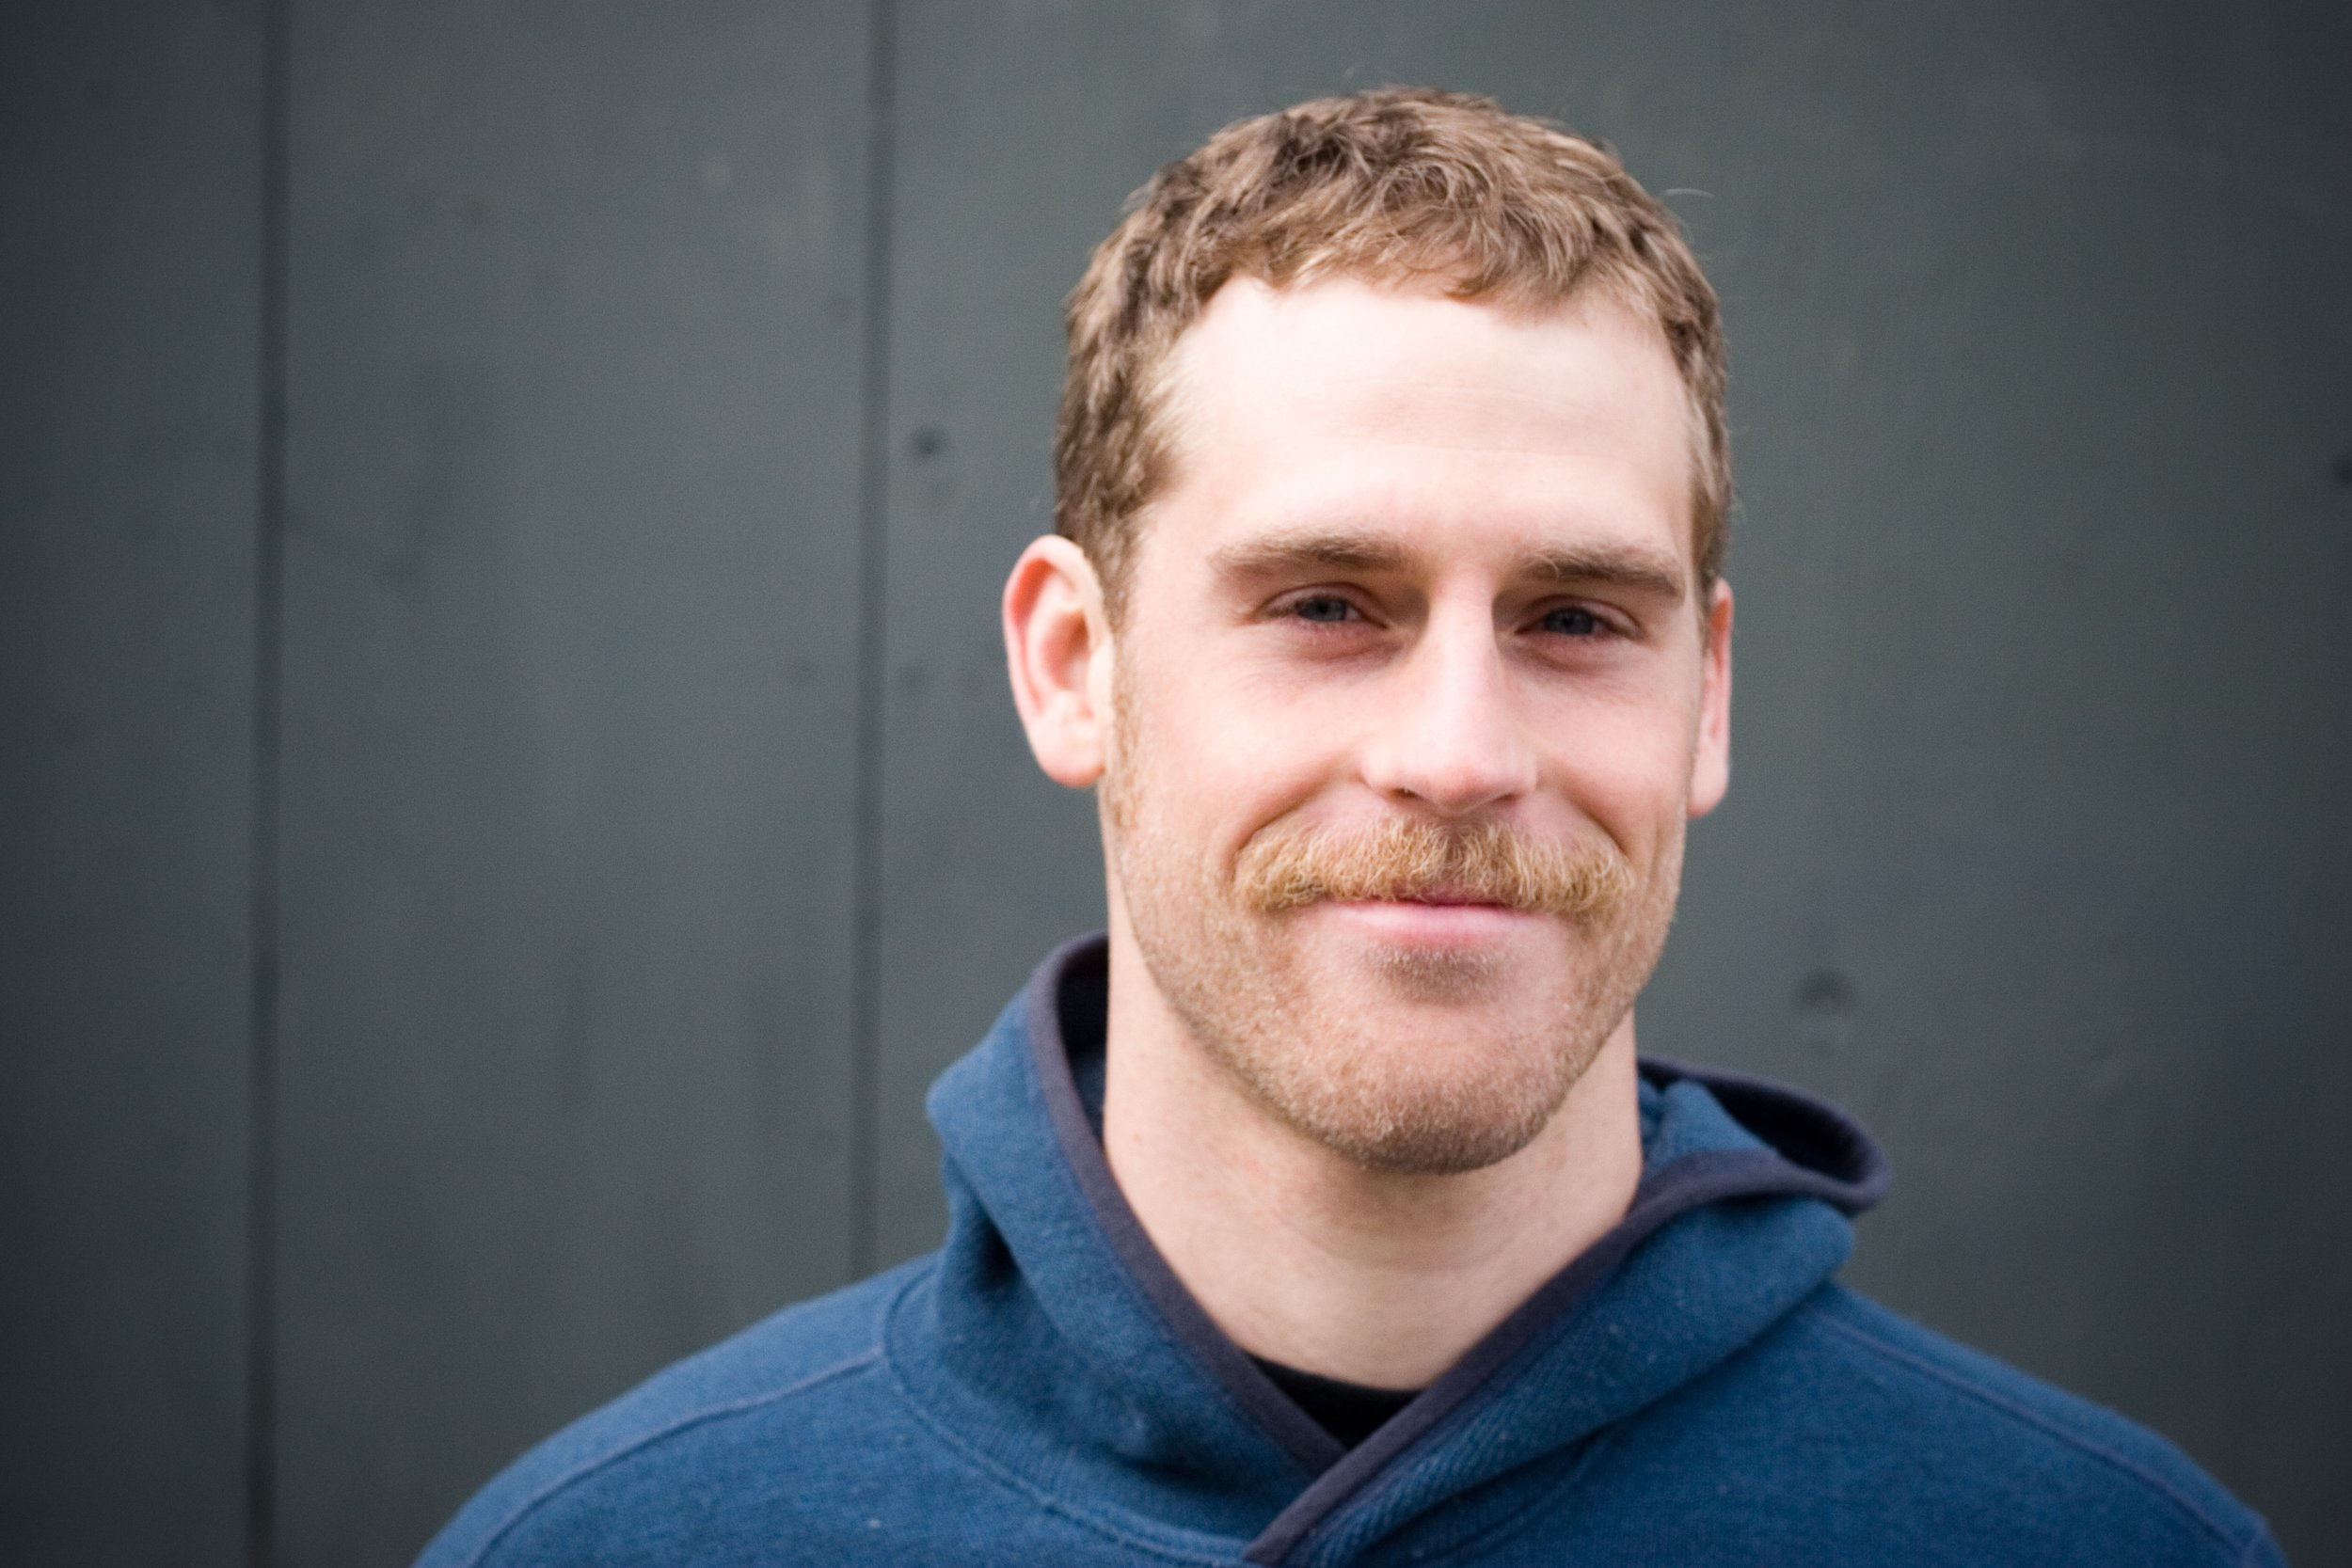 """Erik Hanson, Revelstoke BC - """"The purpose of art is not the release of a momentary ejection of adrenaline but rather the gradual, lifelong construction of a state of wonder and serenity.""""― Glenn GouldErik, aka """"Happy"""" hails from Powell River, BC. In the past few years he has spent time in Tofino and Victoria, and now lives in Revelstoke as a forest fire fighter. He is passionate about Art, Social Change, Reading, Rockclimbing, Kindness, Graphic Facilitation, Surfing, Biking, Kiteboarding and skateboarding on sunny days. A natural leader and doer, Erik is founding member of extremekindness.com, a crew leader on the Monashee Unit Crew, a R&D specialist for Ocean Rodeo, A board member for """"1% for the Hungry"""". Erik believes that nature is our default, it perpetuates change and adventure. Mother Nature runs the healthiest operating system and it's important to check in every once an a while. He is an active participant in LILI's because it provides him with a chance to contribute and learn."""